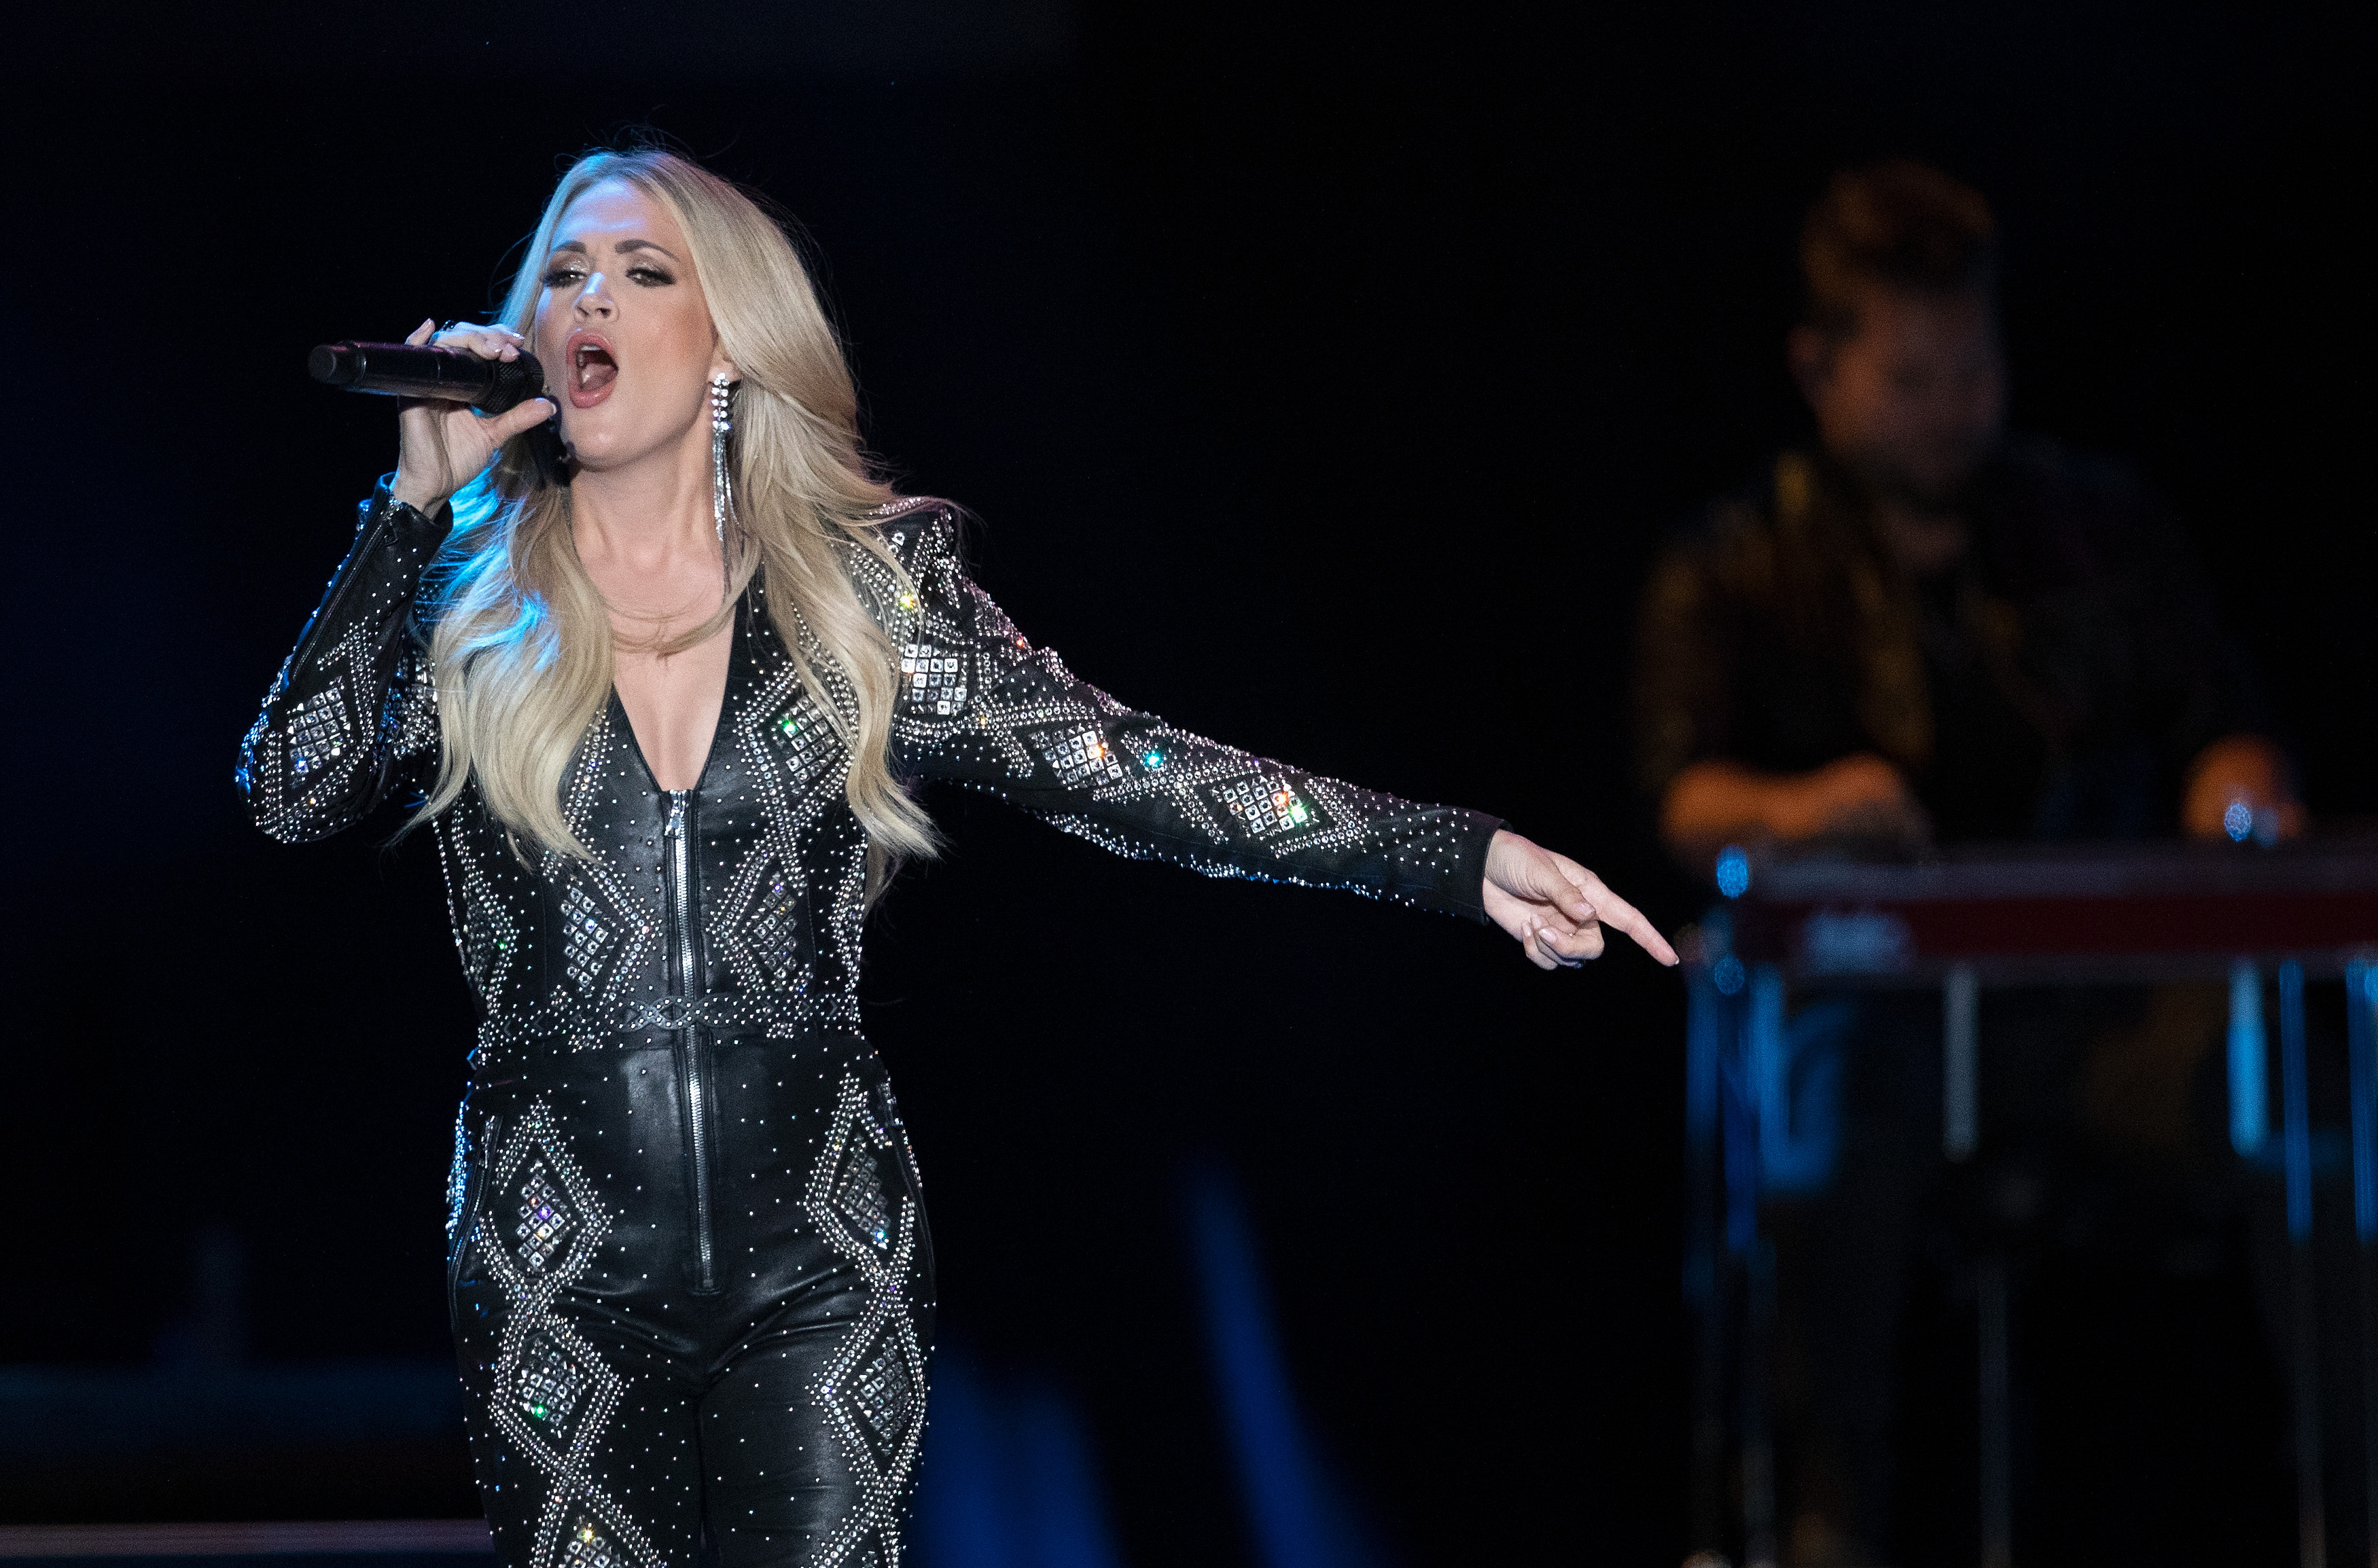 Carrie Underwood Performs At The SSE Arena, Wembley